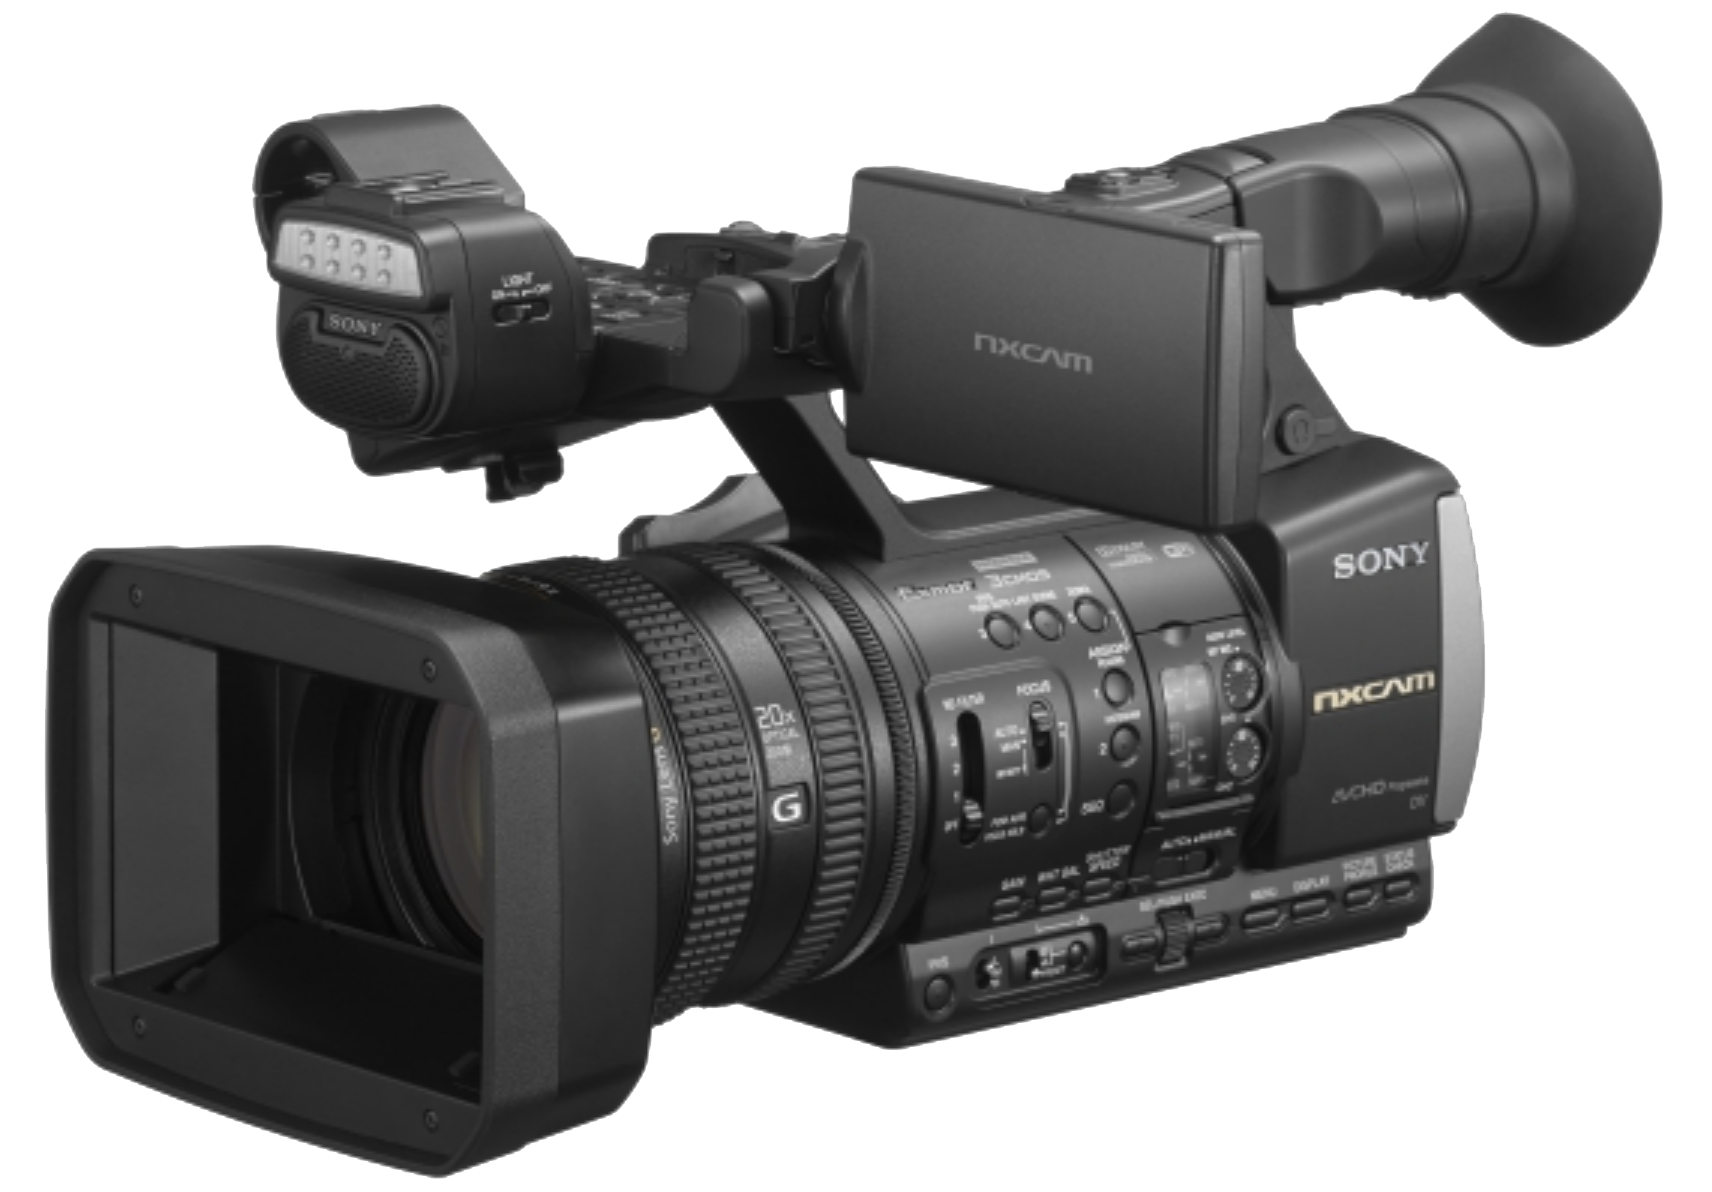 Camcorder 1080p Video camera Point.